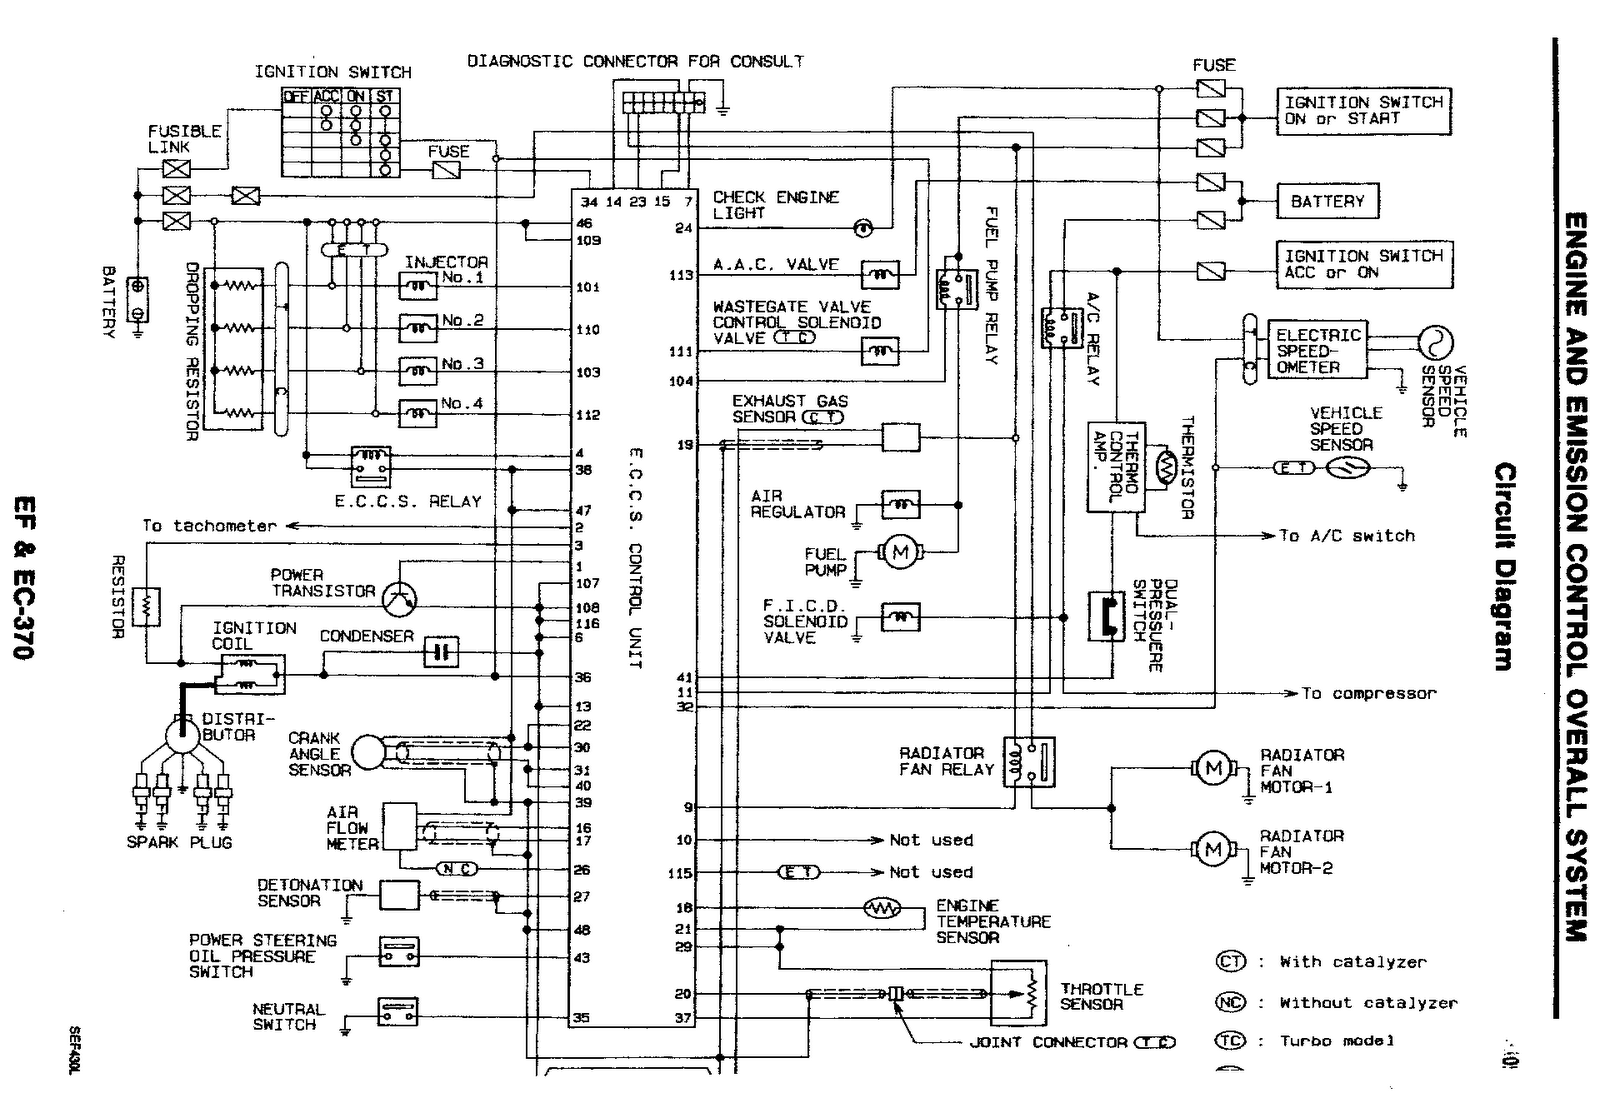 Wiring Diagram For Audi A4 - Wiring Diagram Post on audi a4 car, audi a4 fuse diagram, audi a4 speakers, audi a4 schematic, 2002 audi a4 relay diagram, audi a4 stereo system, audi a4 b6 wiring diagram, audi a4 fuse box location, audi a4 seats, audi a4 wiring harness, 2006 audi a6 fuse diagram, audi a4 radio, audi a4 battery diagram, audi a4 1.8t engine diagram, audi a4 sunroof, audi tt wiring diagram, audi a4 starter diagram, audi a4 electrical diagram, audi a4 instrument cluster, audi a4 brakes diagram,